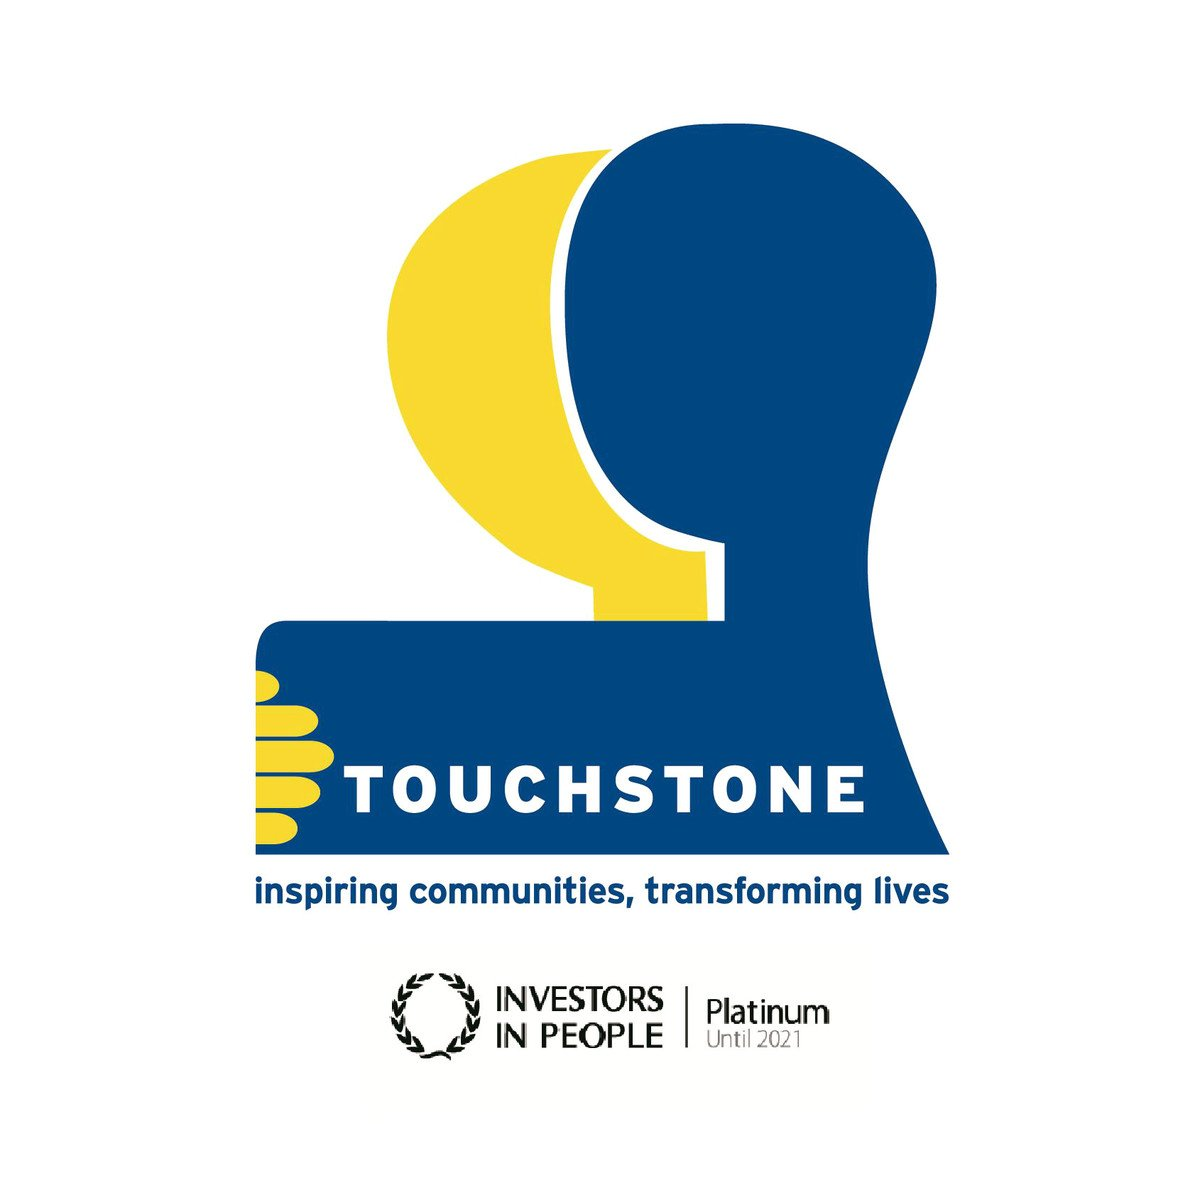 Touchstone_Spt photo